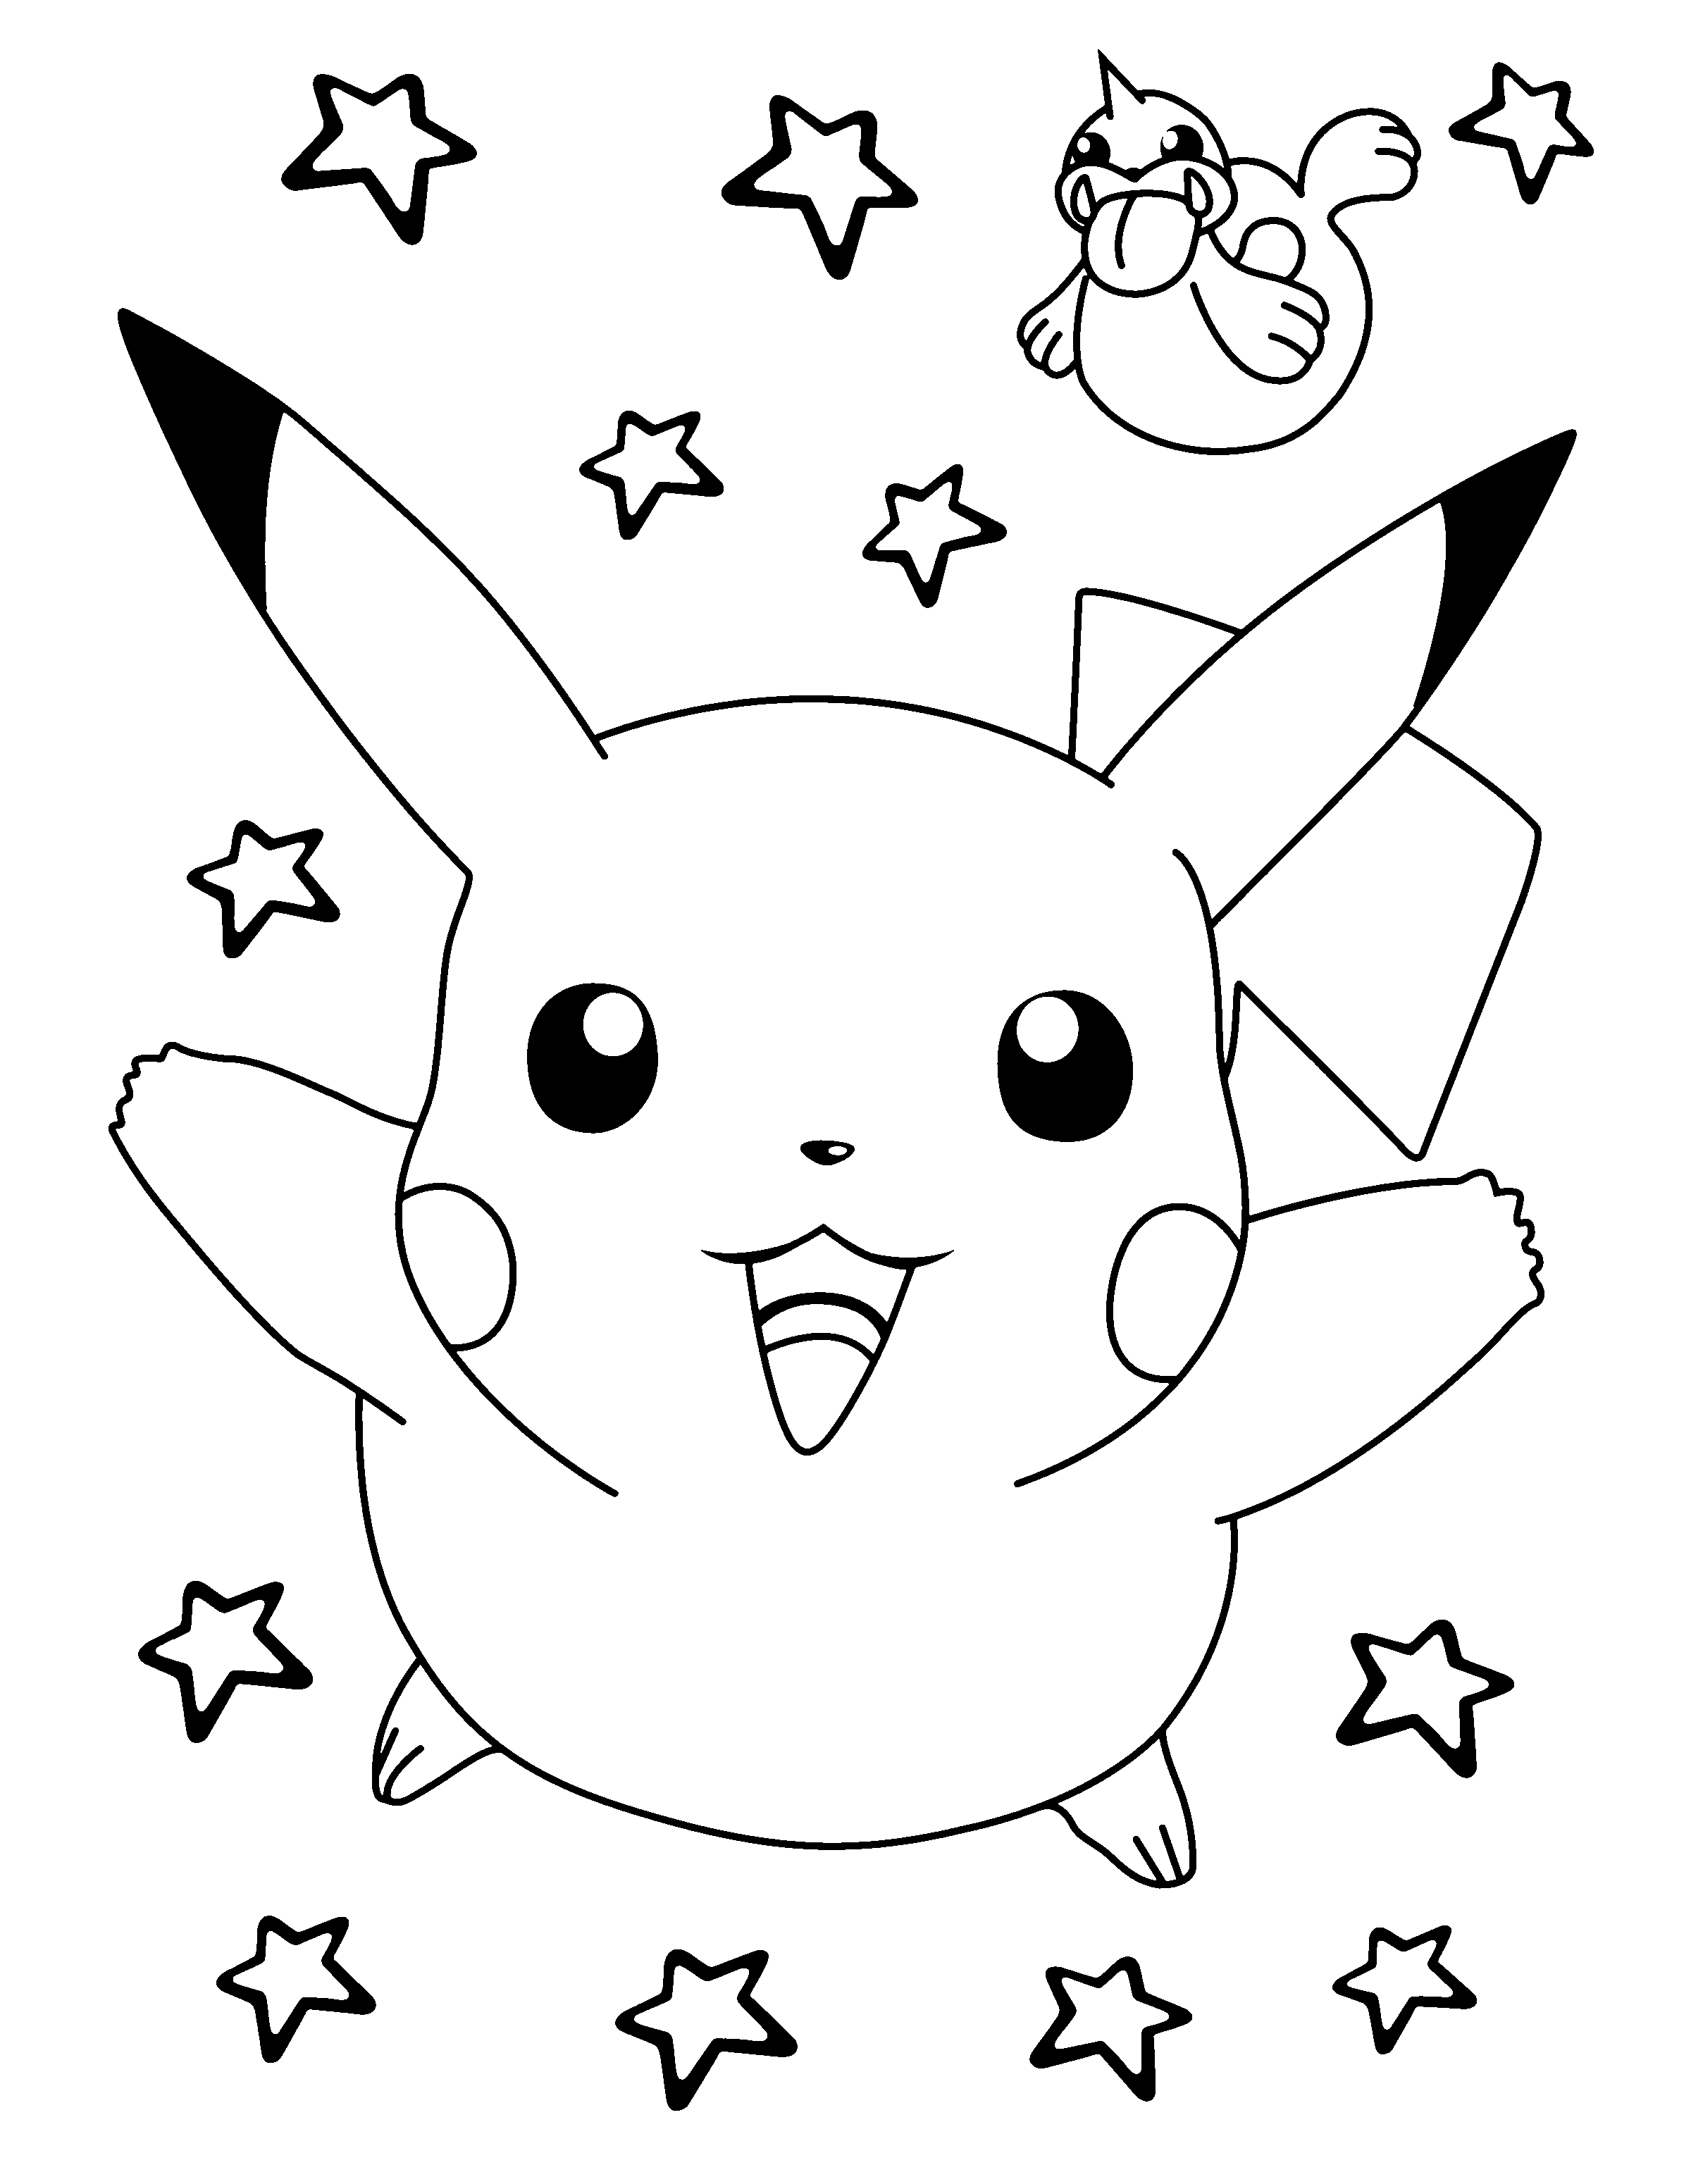 coloriages  u00e0 imprimer   pokemon  num u00e9ro   226222